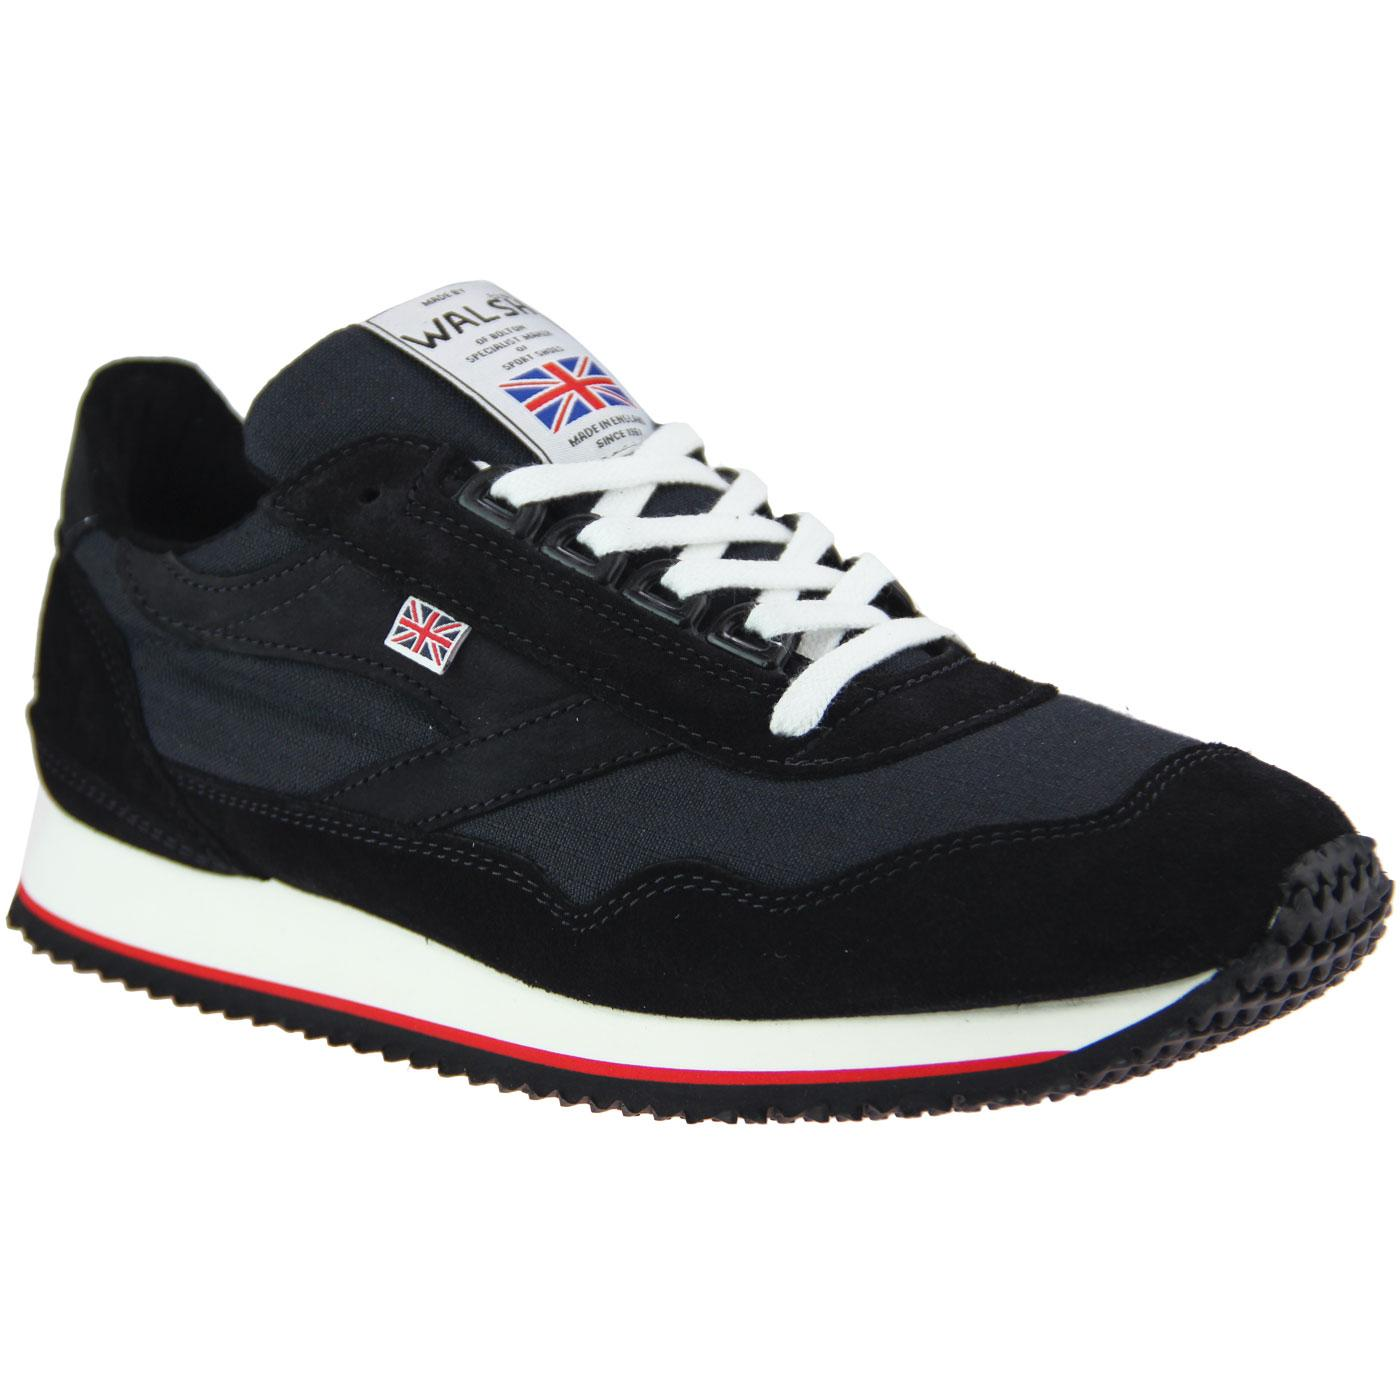 Ensign WALSH Made in England Retro Trainers CARBON